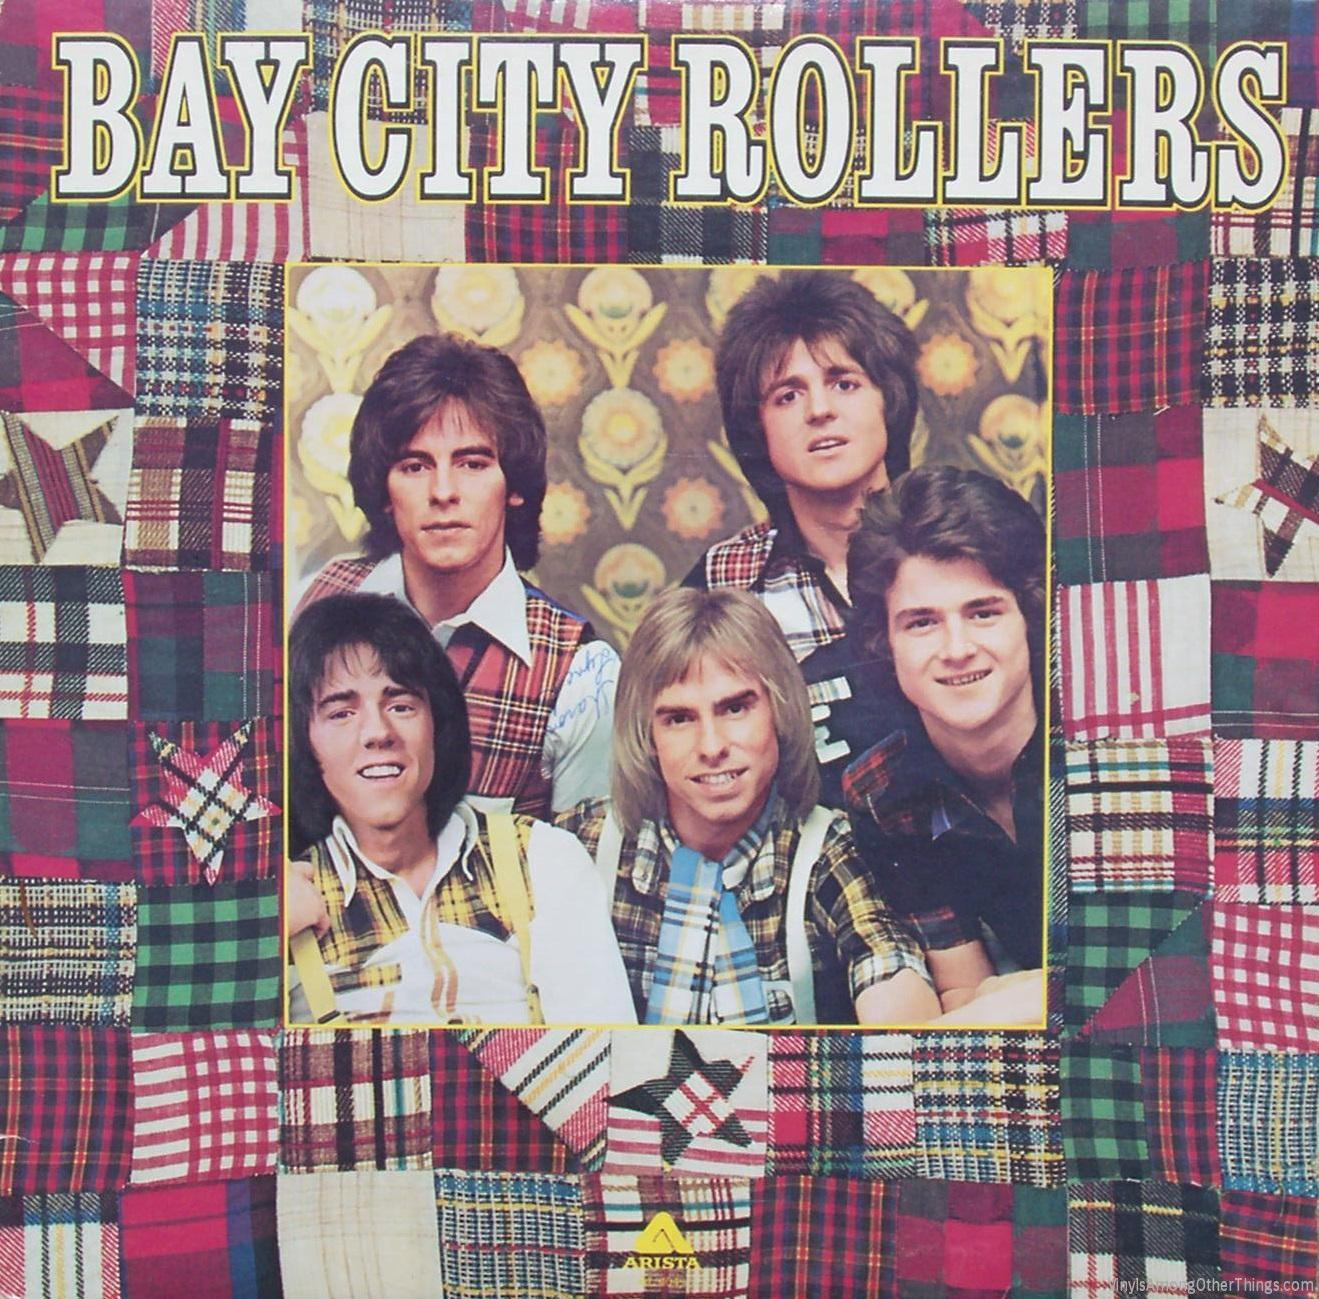 Bay City Rollers Bassist Alan Longmuir Has Died